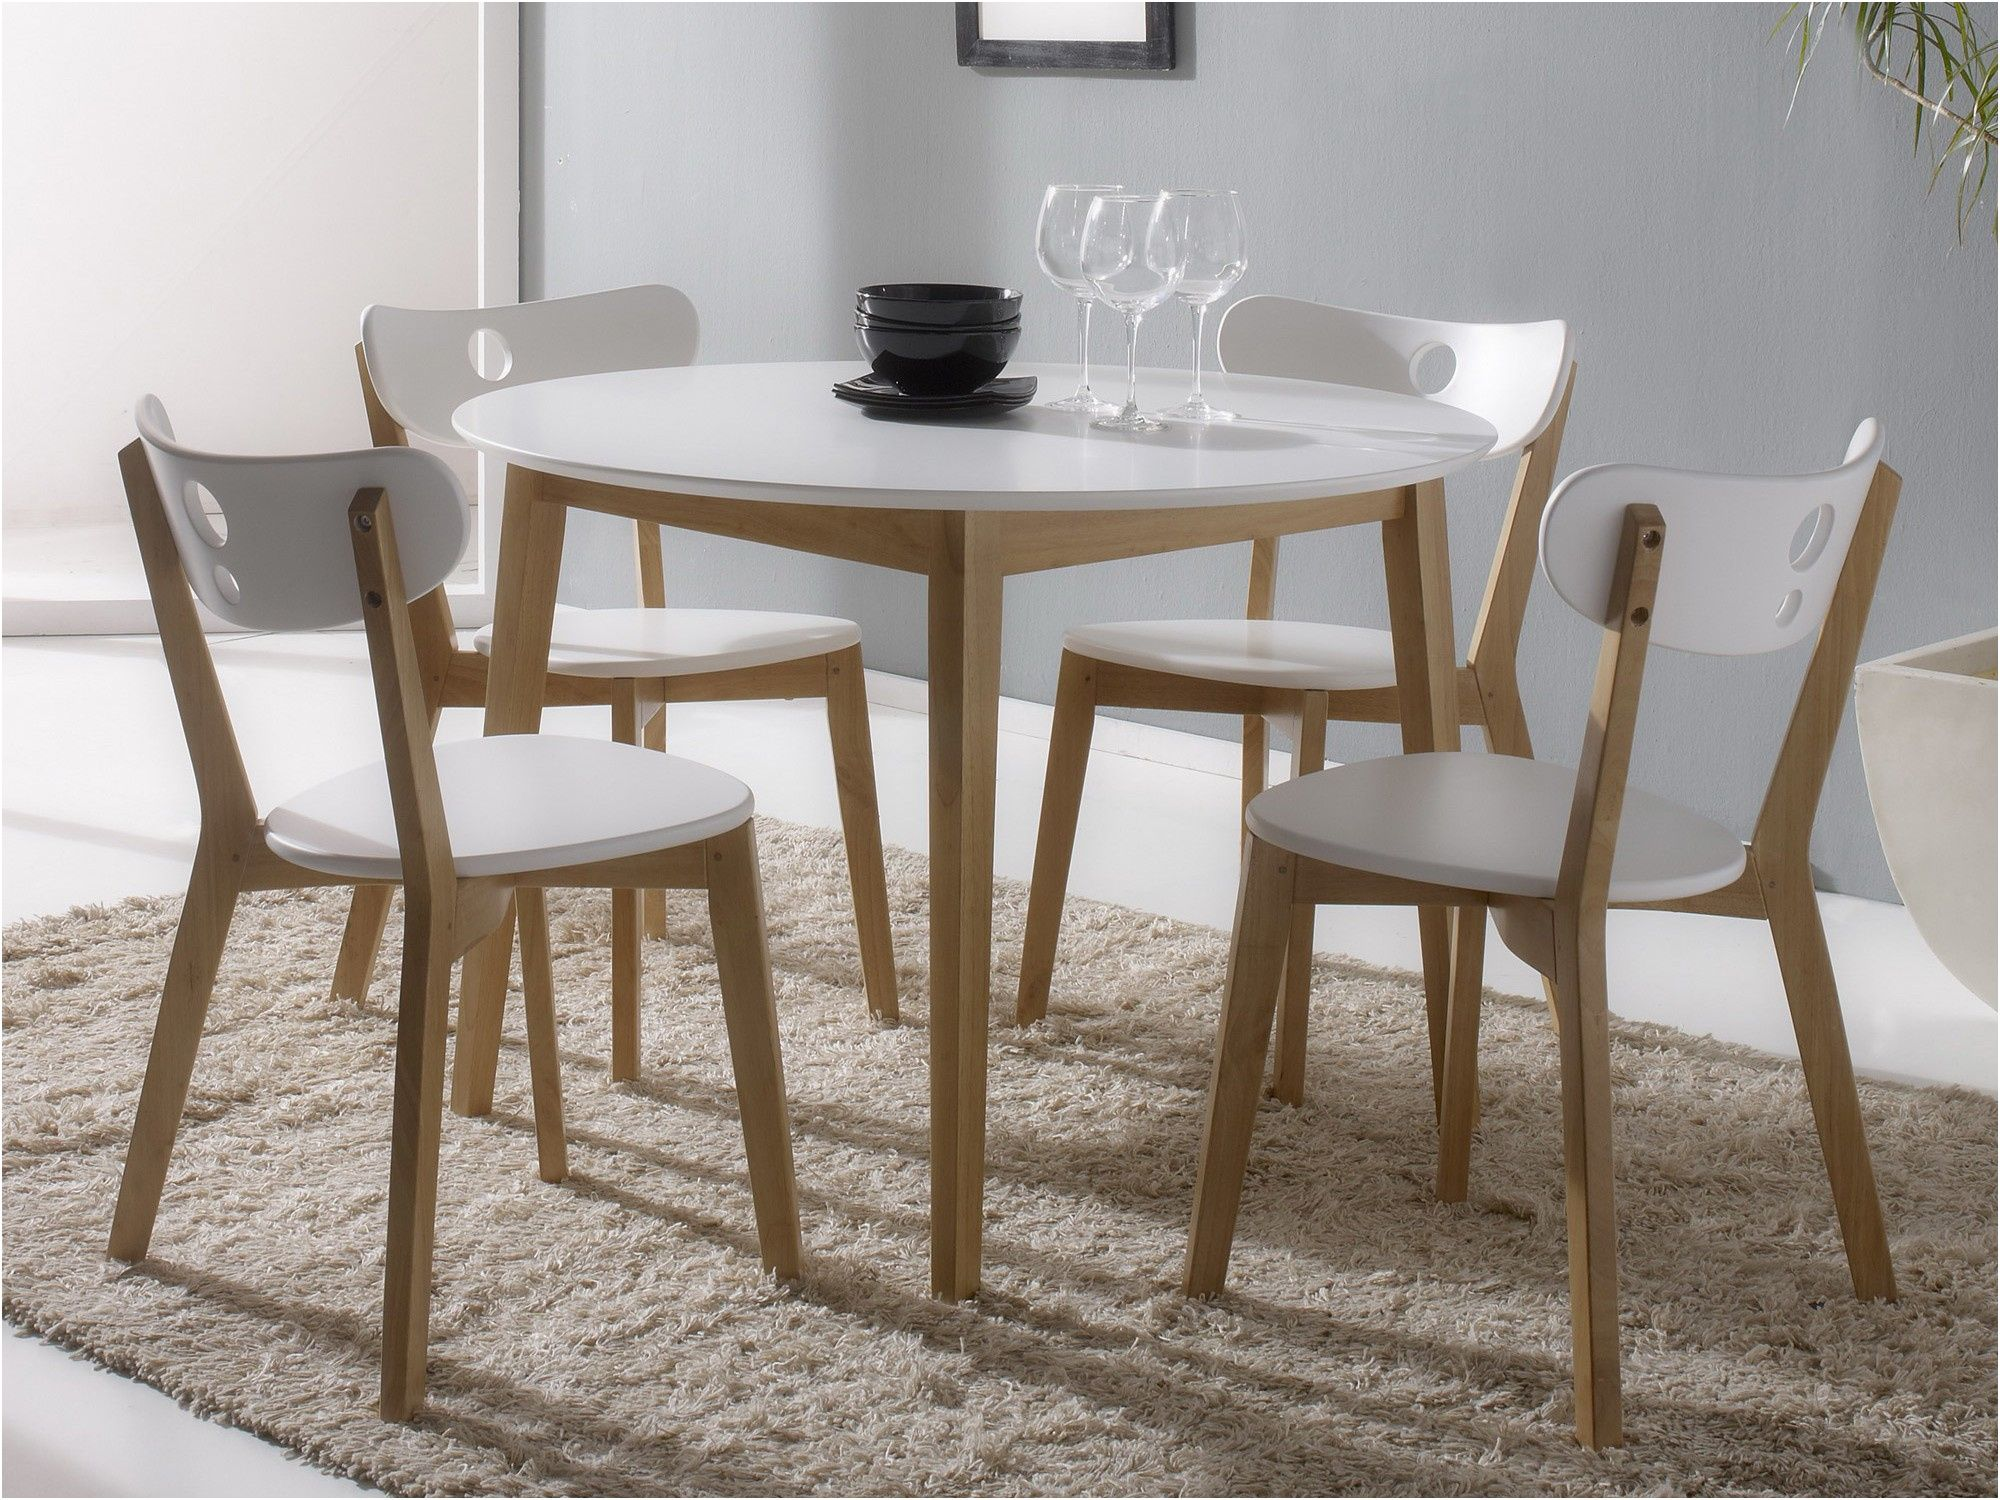 Solde Table A Manger 2 8080 Soldetable